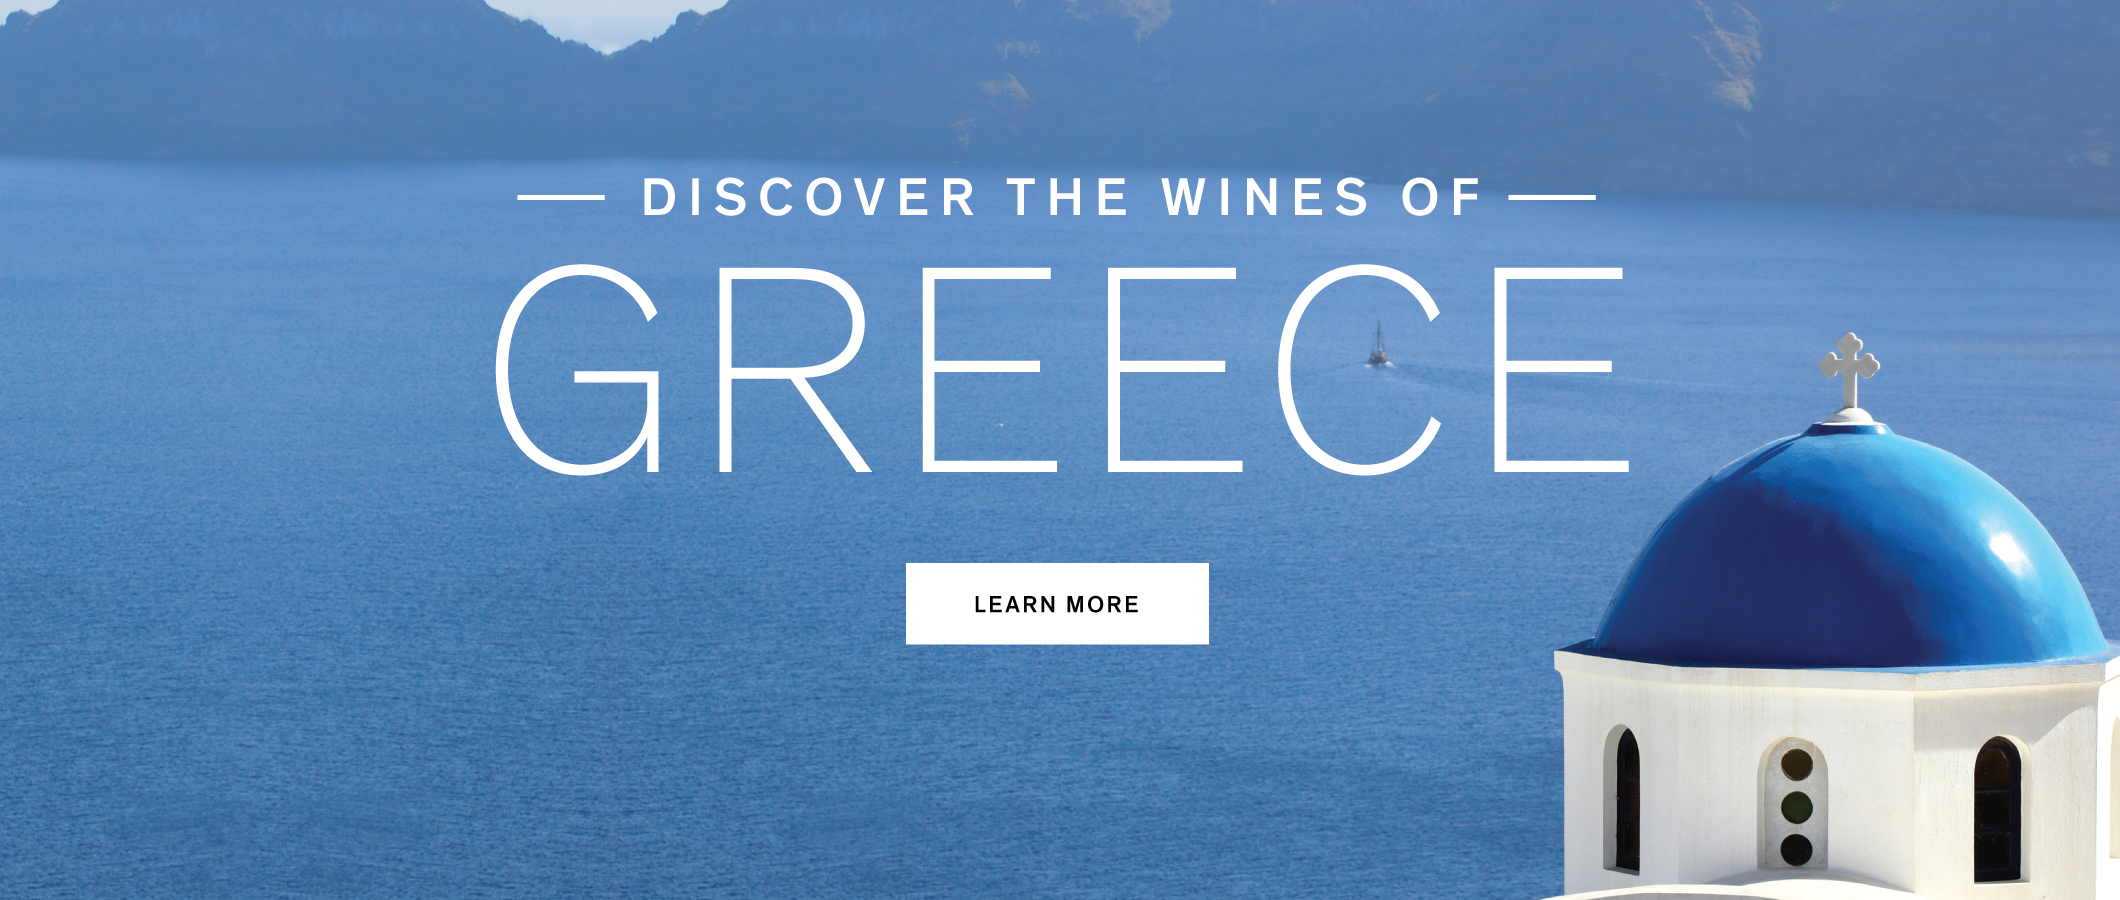 Discover the wines of Greece